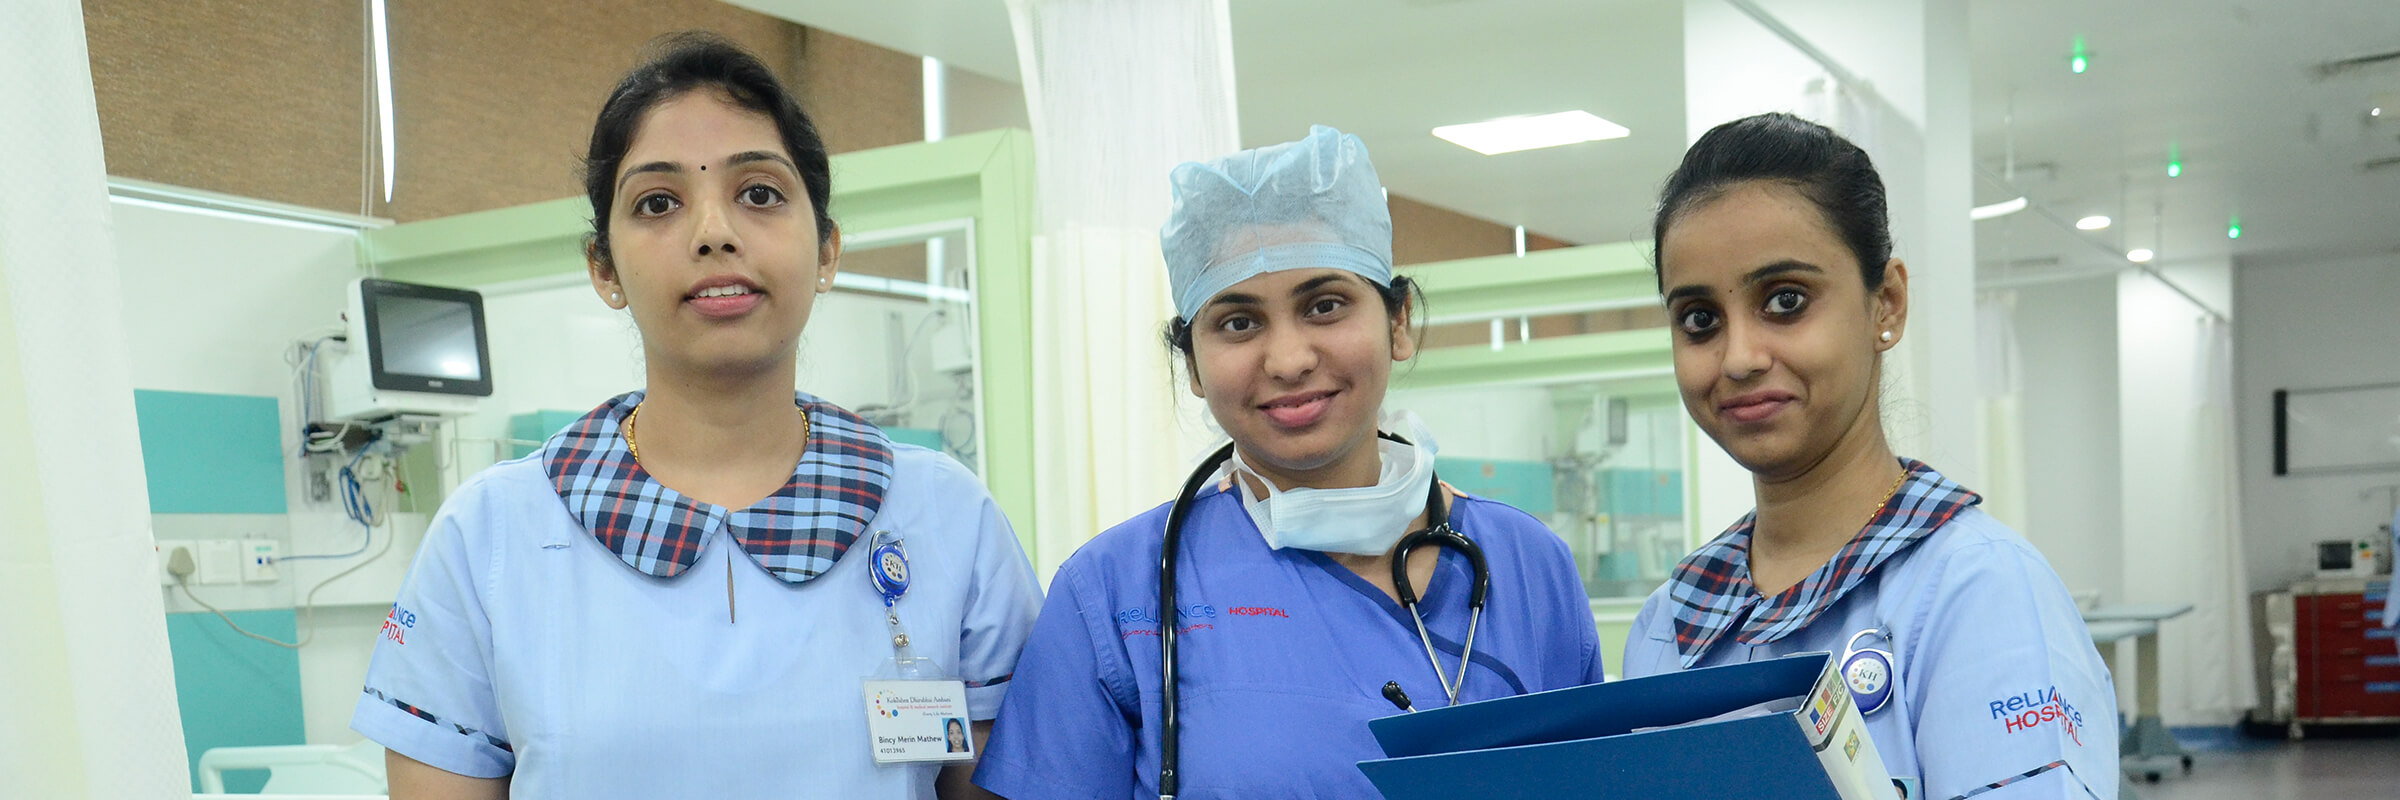 Career at Reliance Hospitals